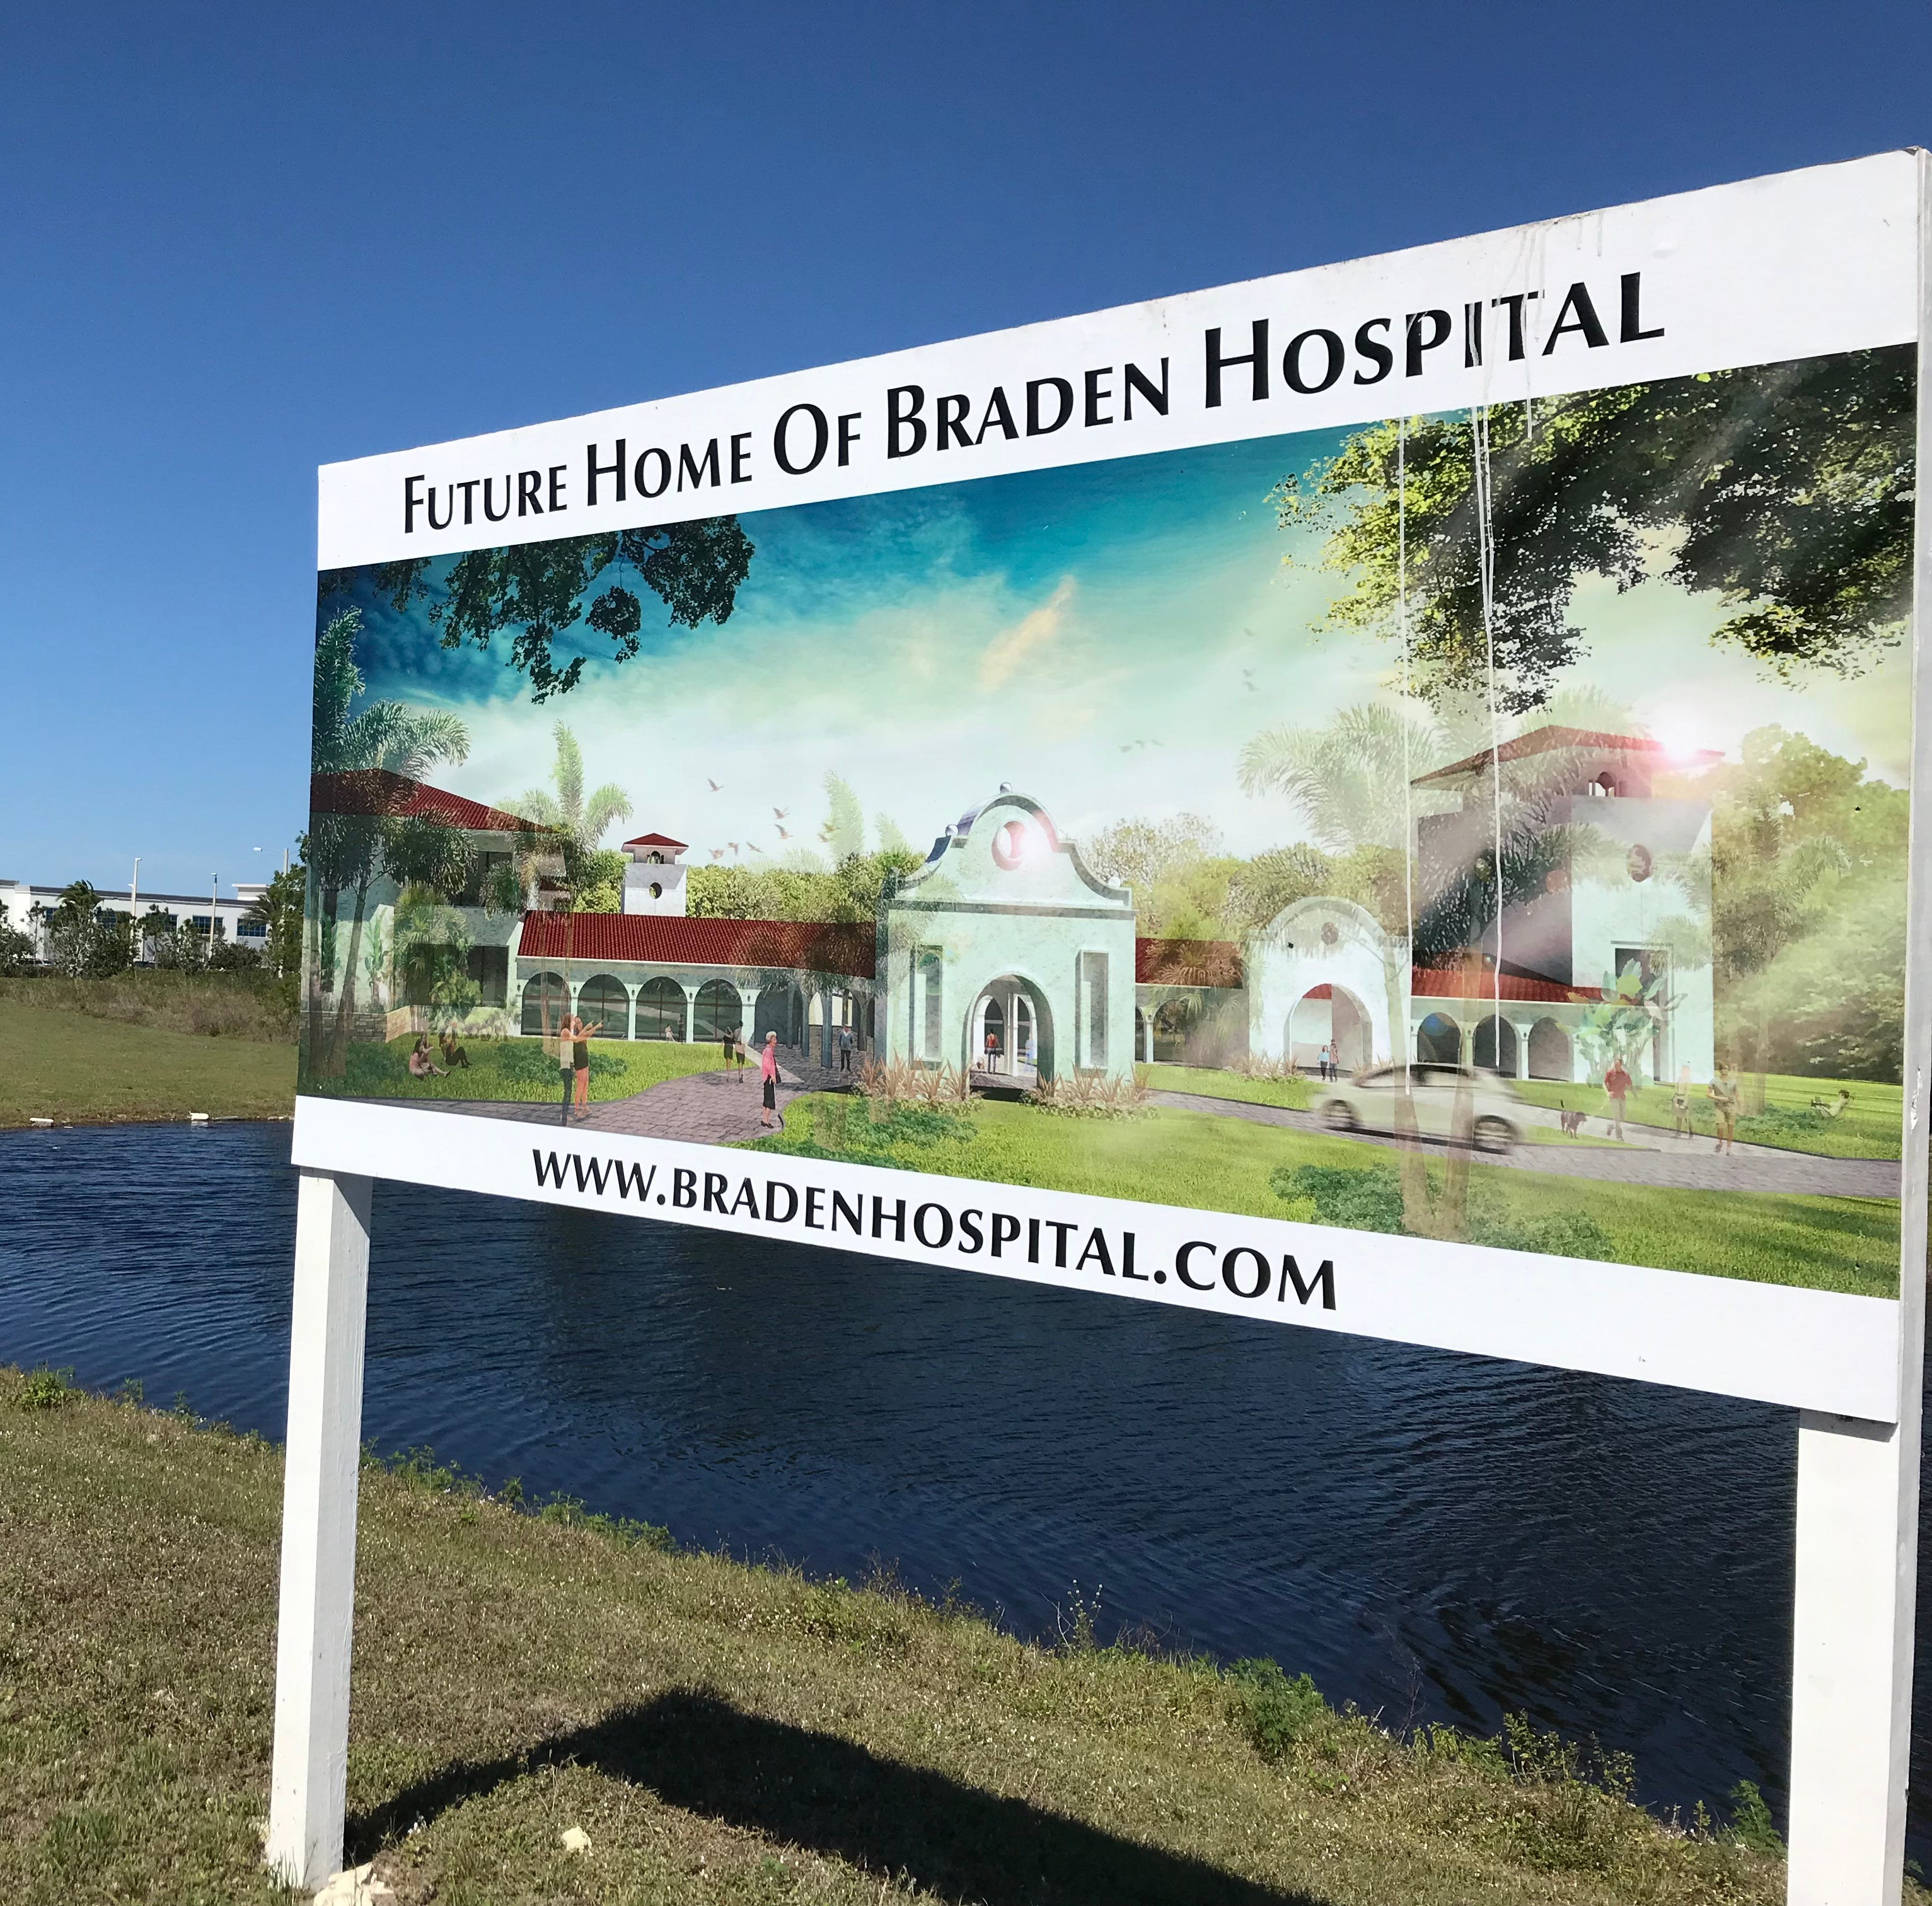 Braden Hospital founder talks about the past and future for medical care in eastern Collier